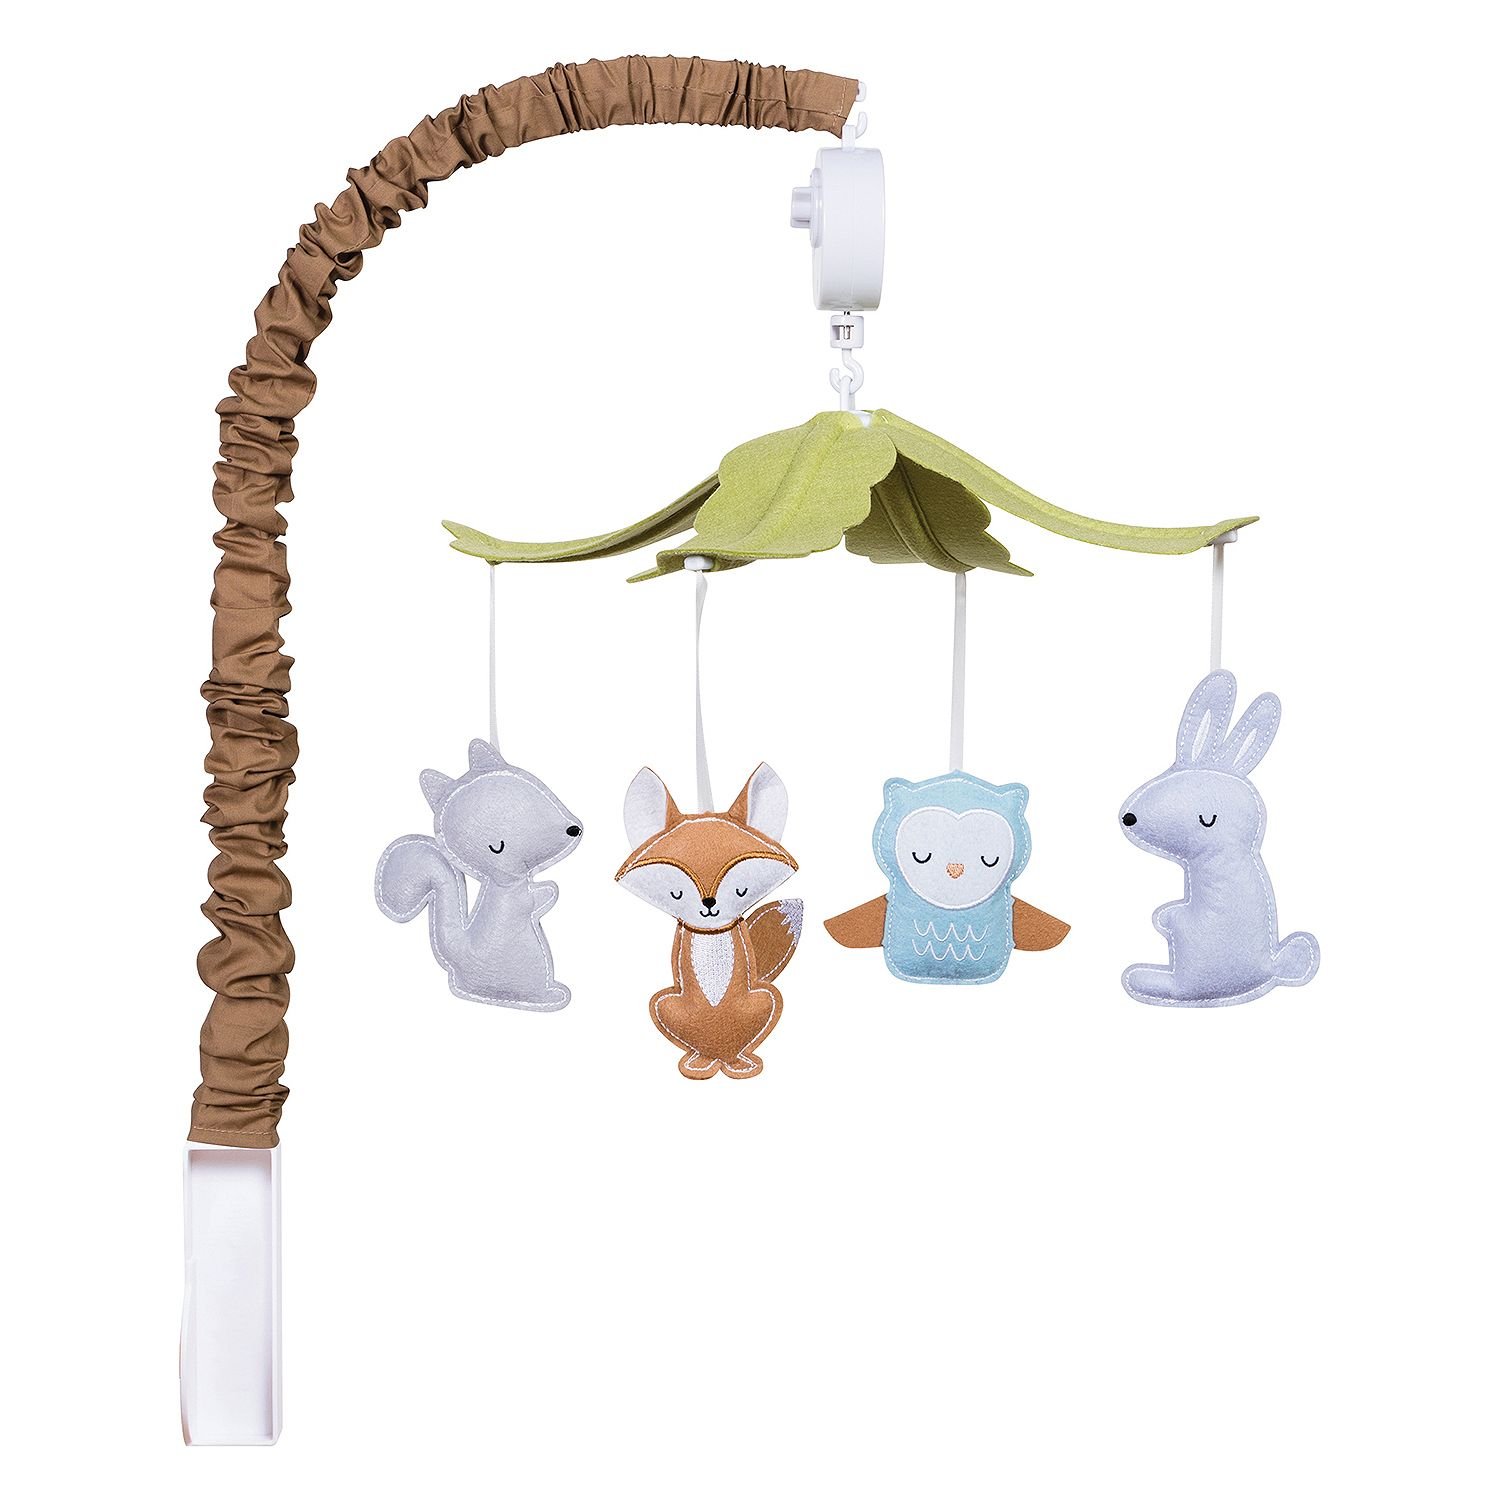 Trend Lab Musical Mobile, Woodland, Mobile easily attaches to most cribs, Plays Brahms Lullaby, Four stuffed animals,